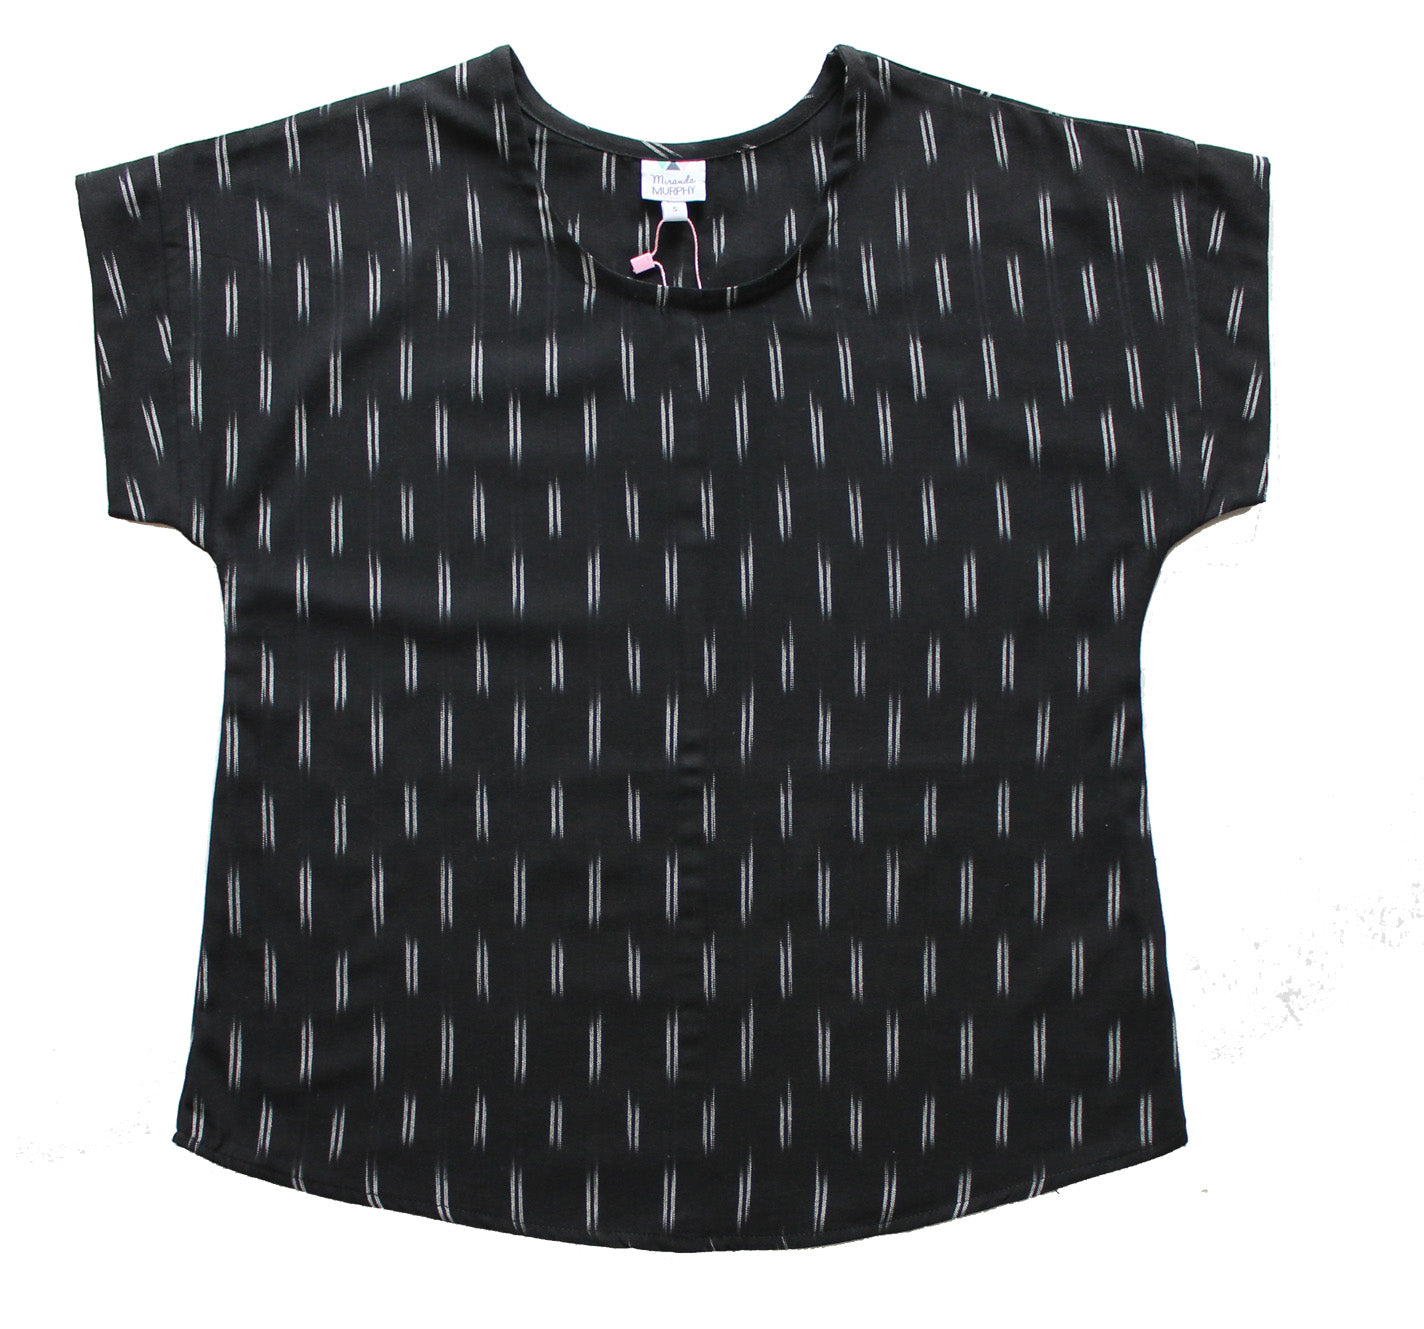 Ikat Boxy Top - Black double line